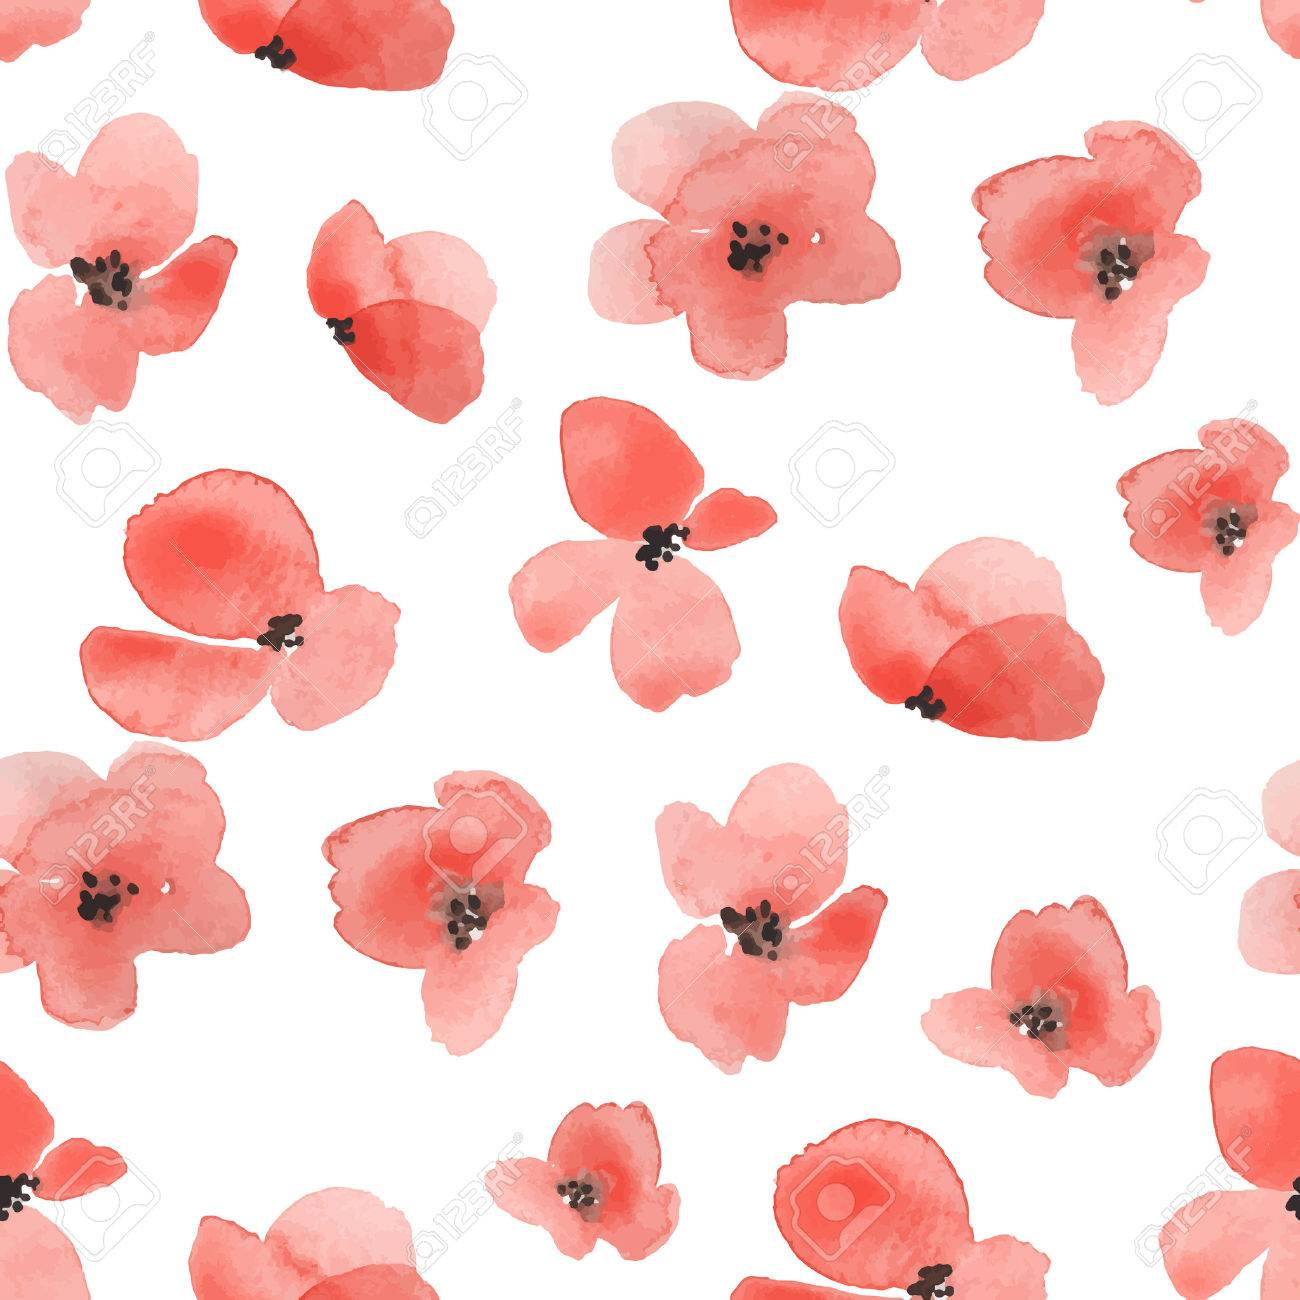 Delicate floral background in vector 1 - 53299895